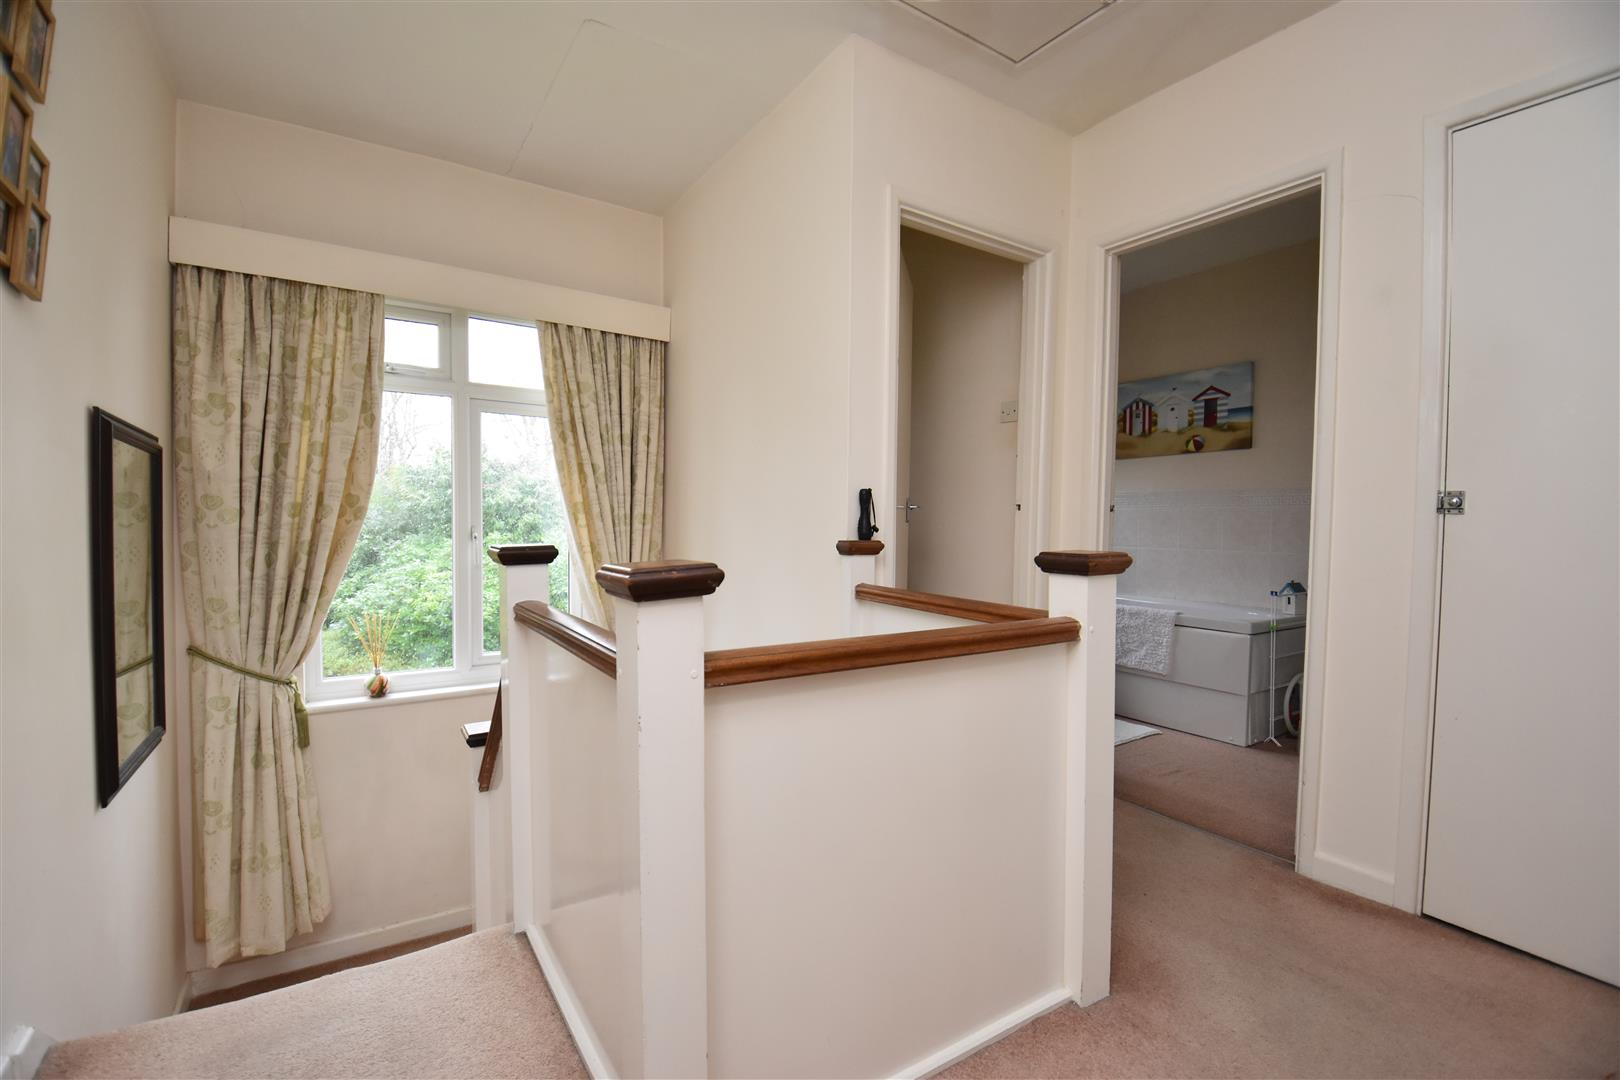 property in limes avenue  horley  surrey  rh6 9dq